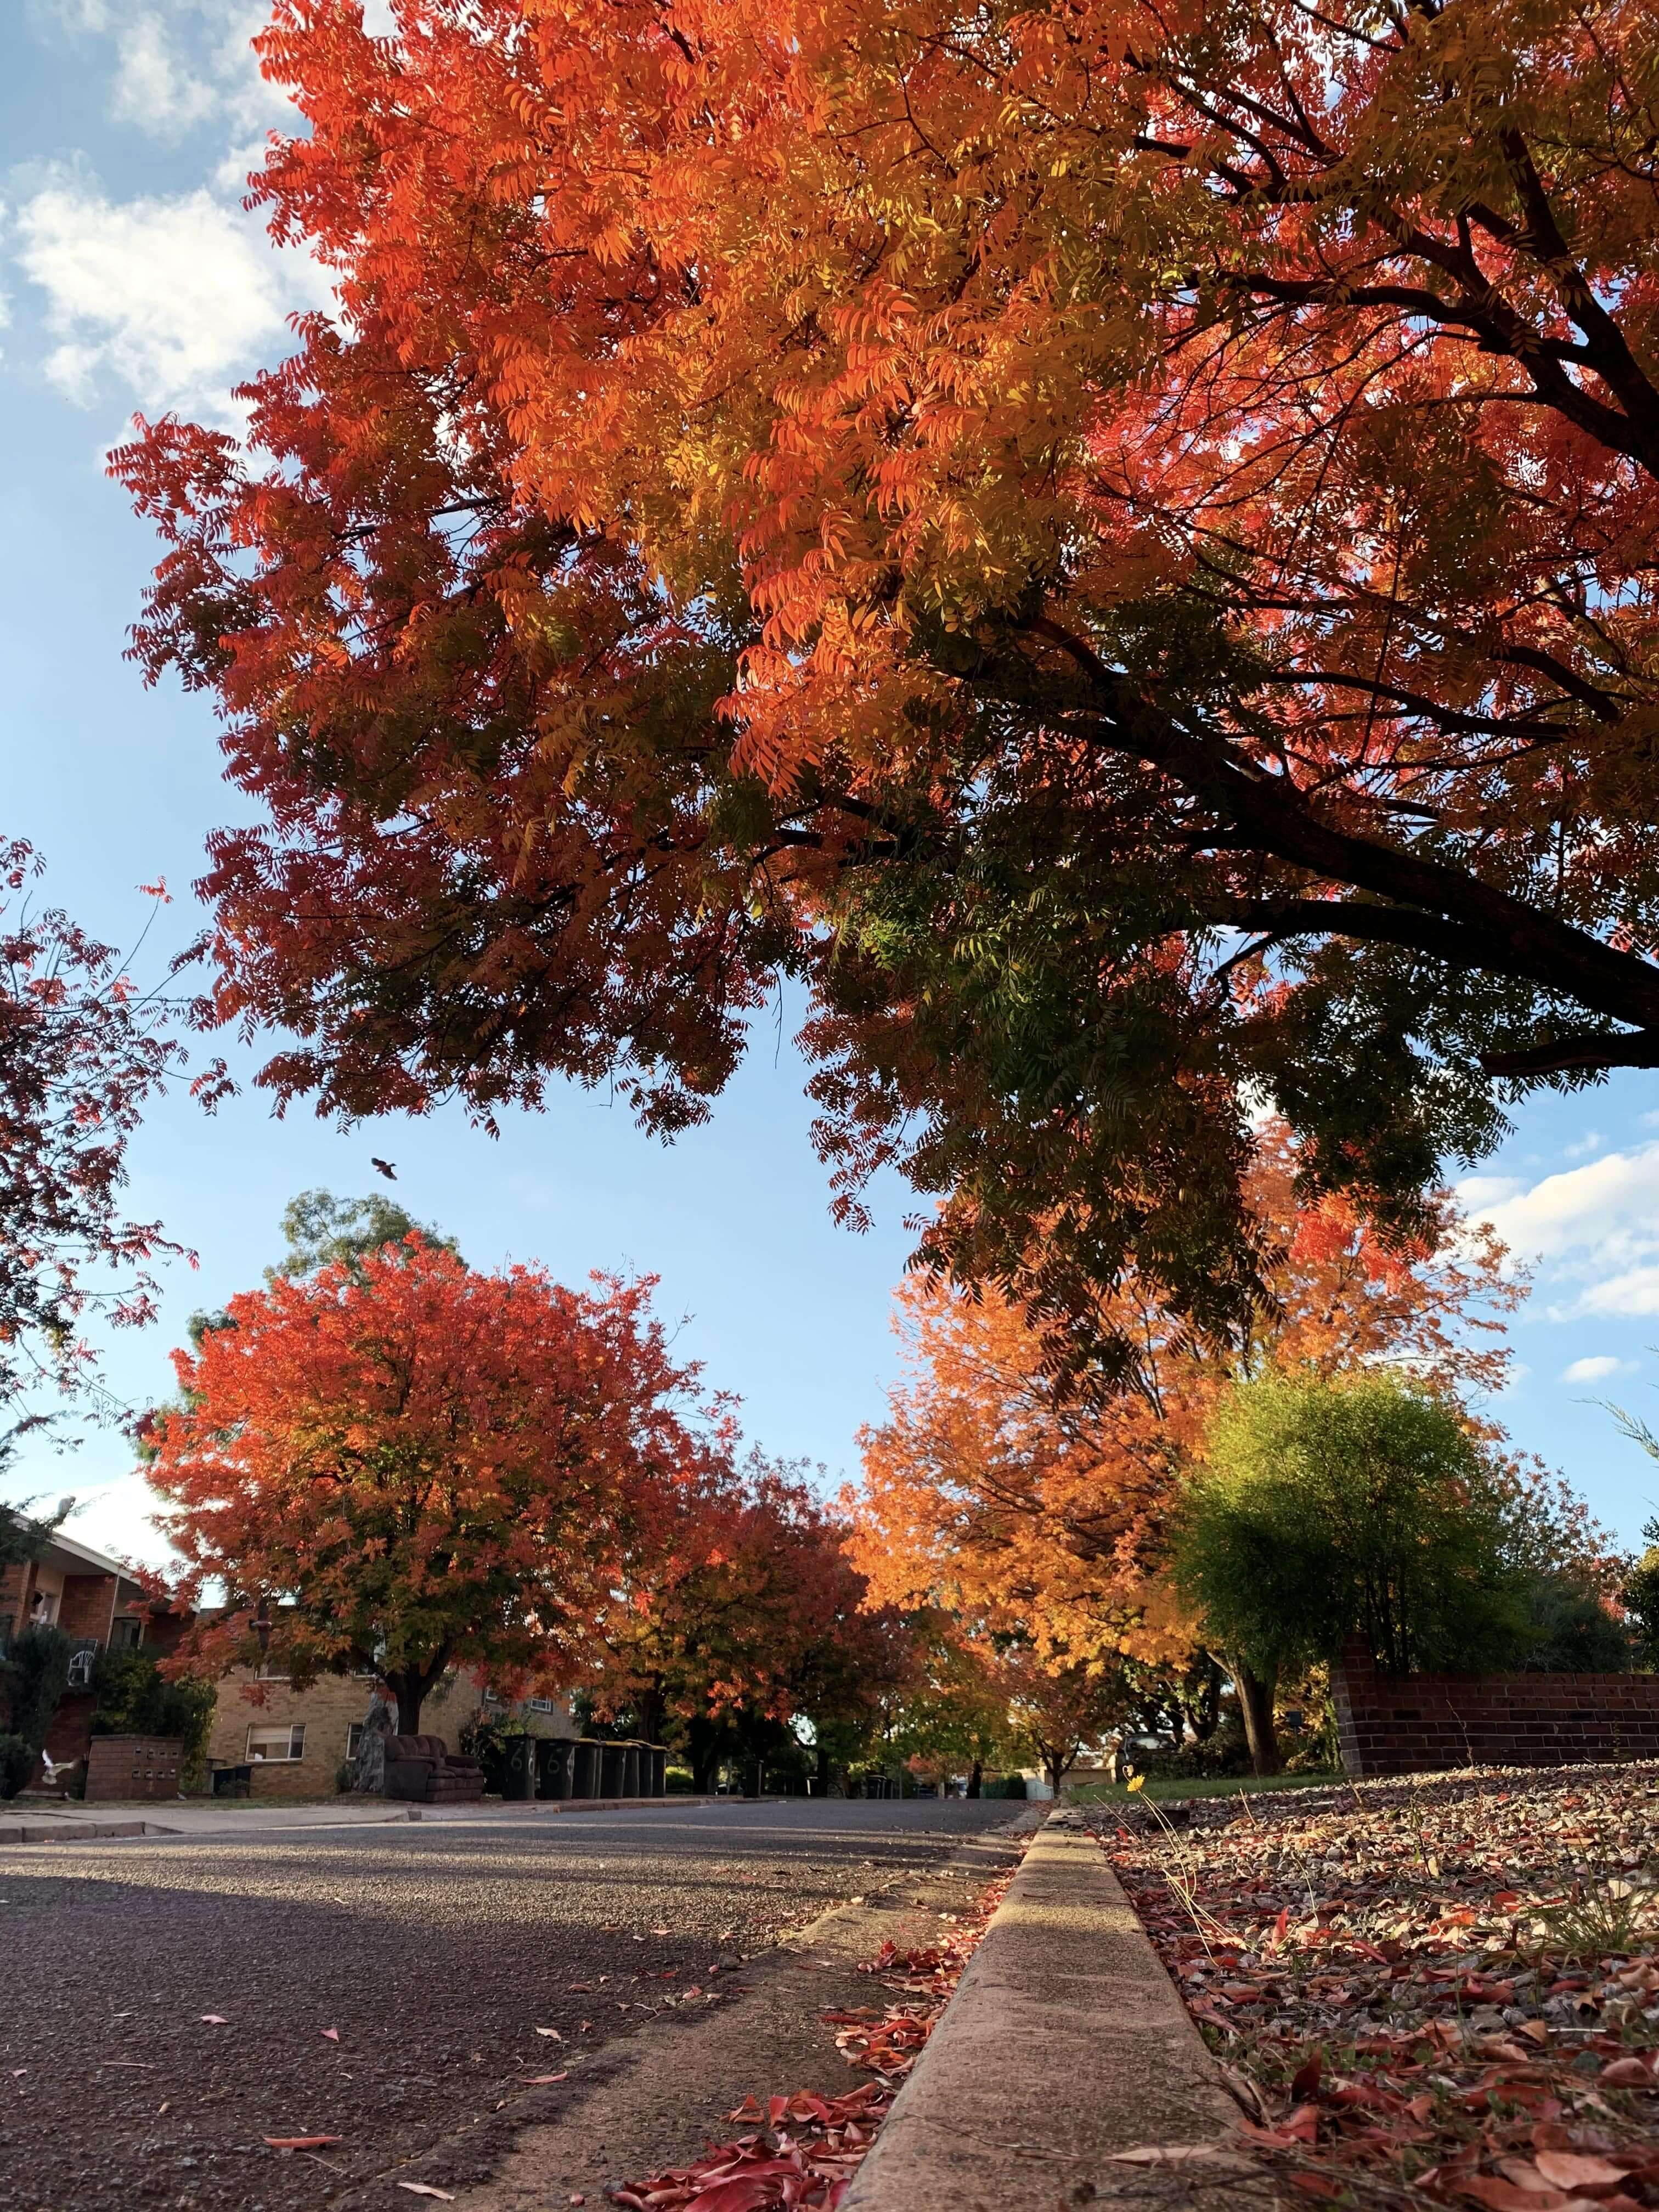 photo of a sidewalk lined with reddish-orange autumn trees